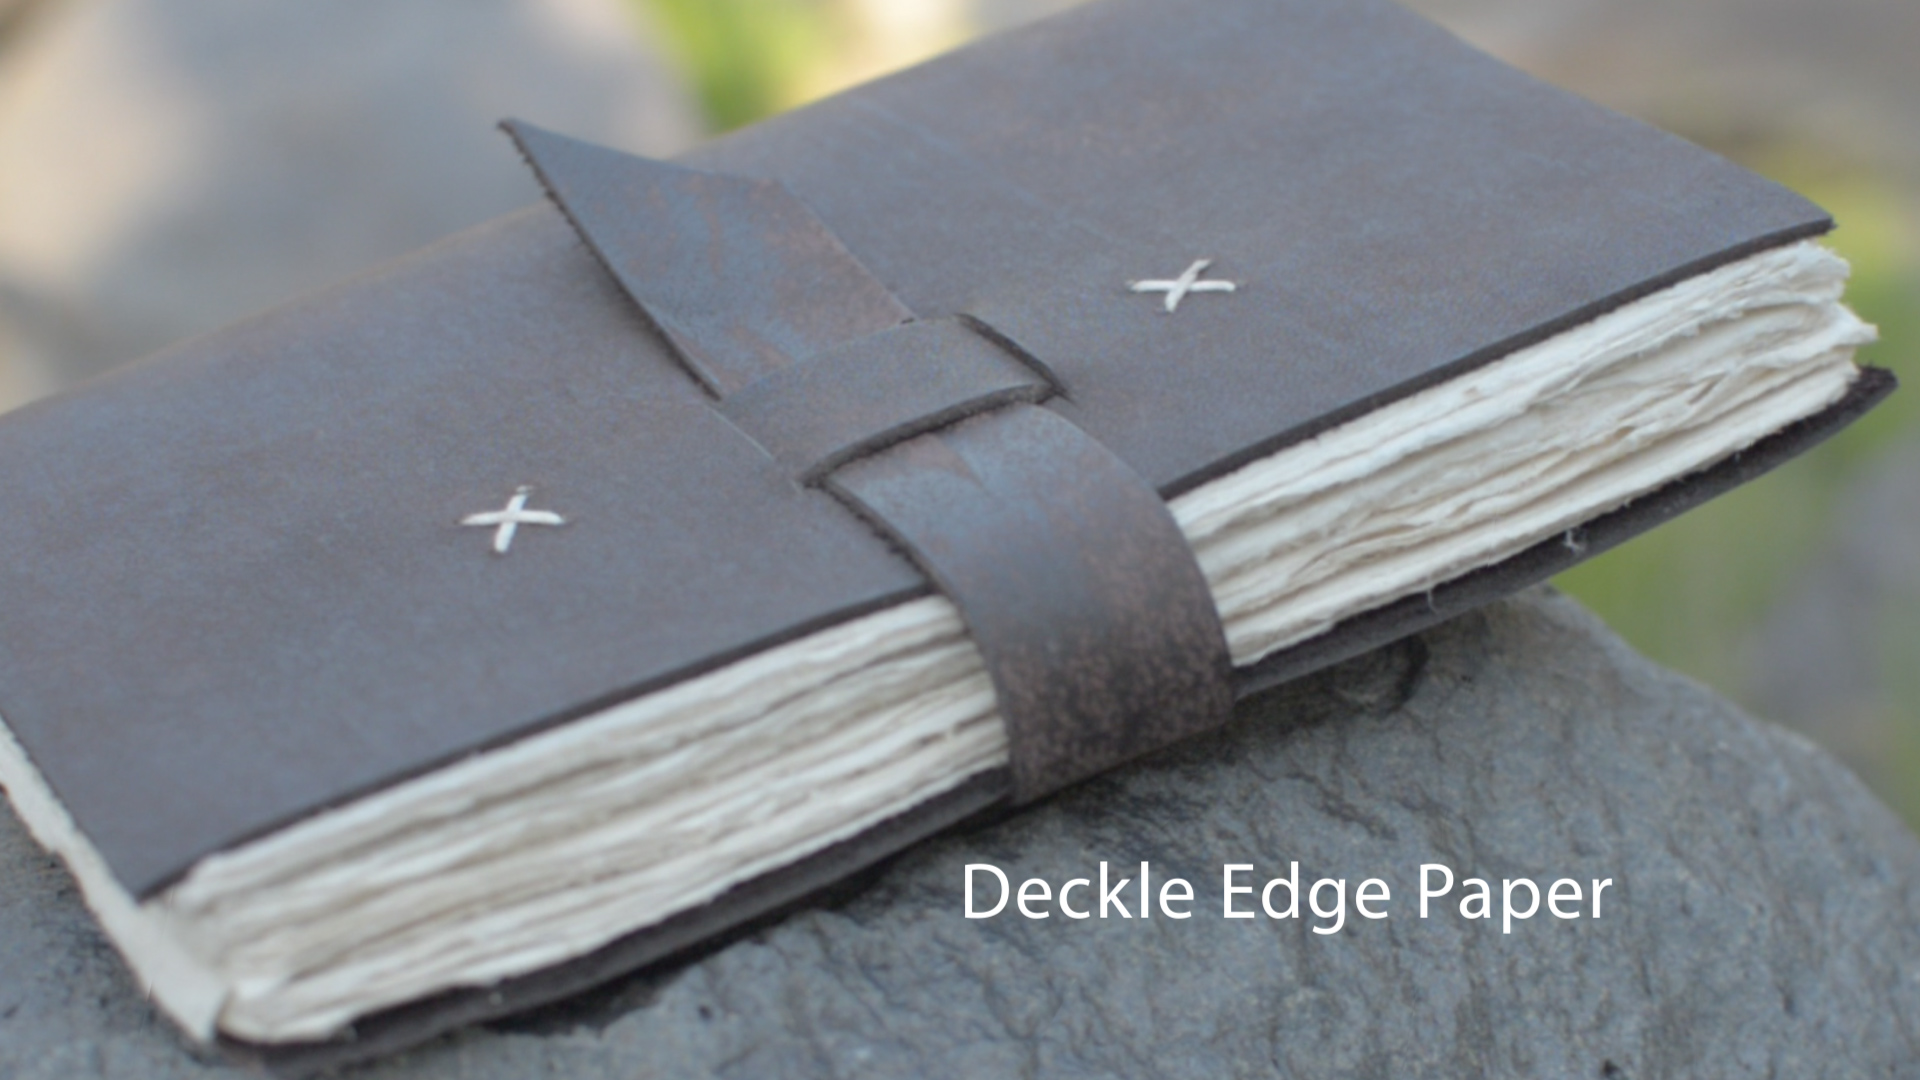 What is Deckle Edge Paper?